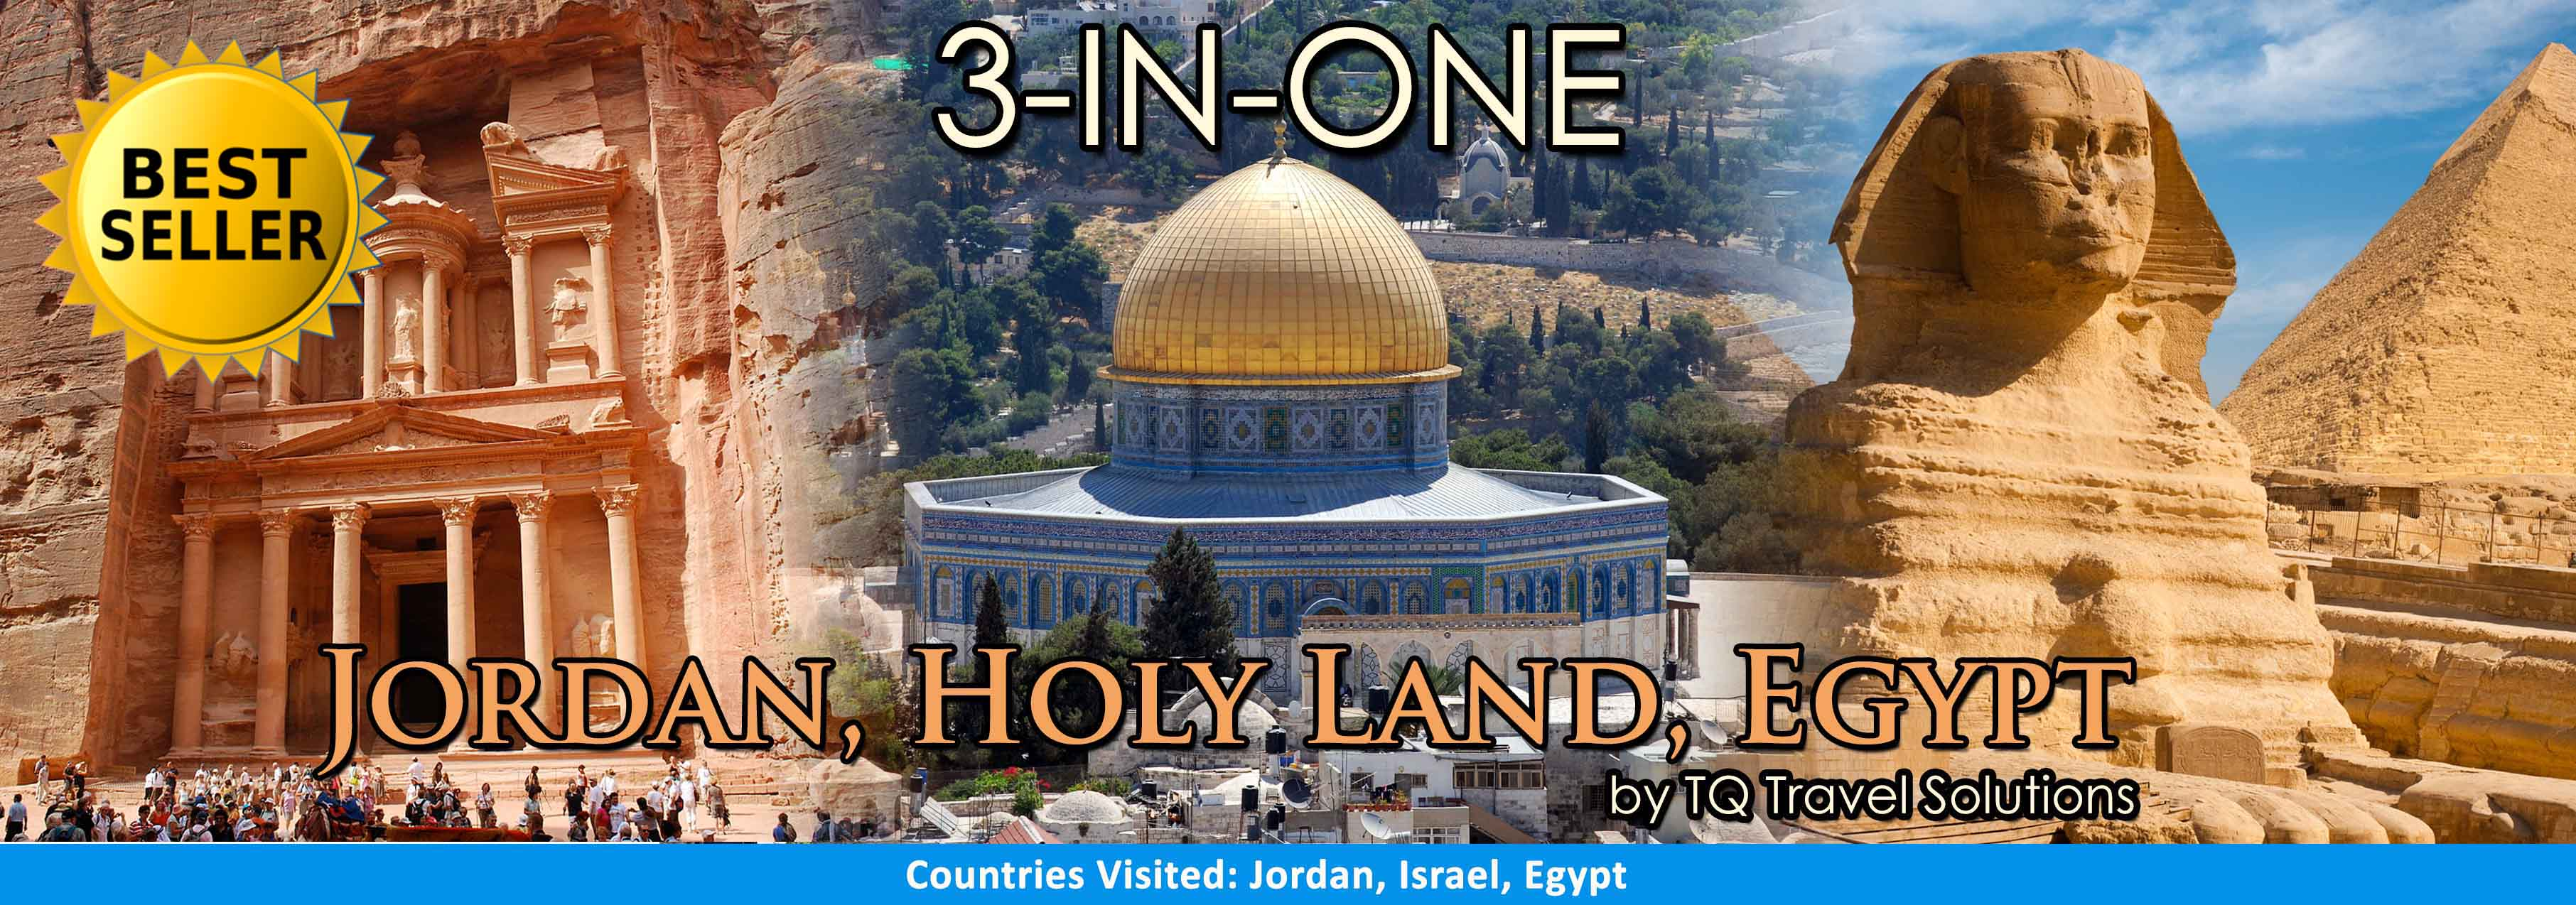 TQ Travel Solutions 3 in 1 Holy Land Jordan Egypt Tour